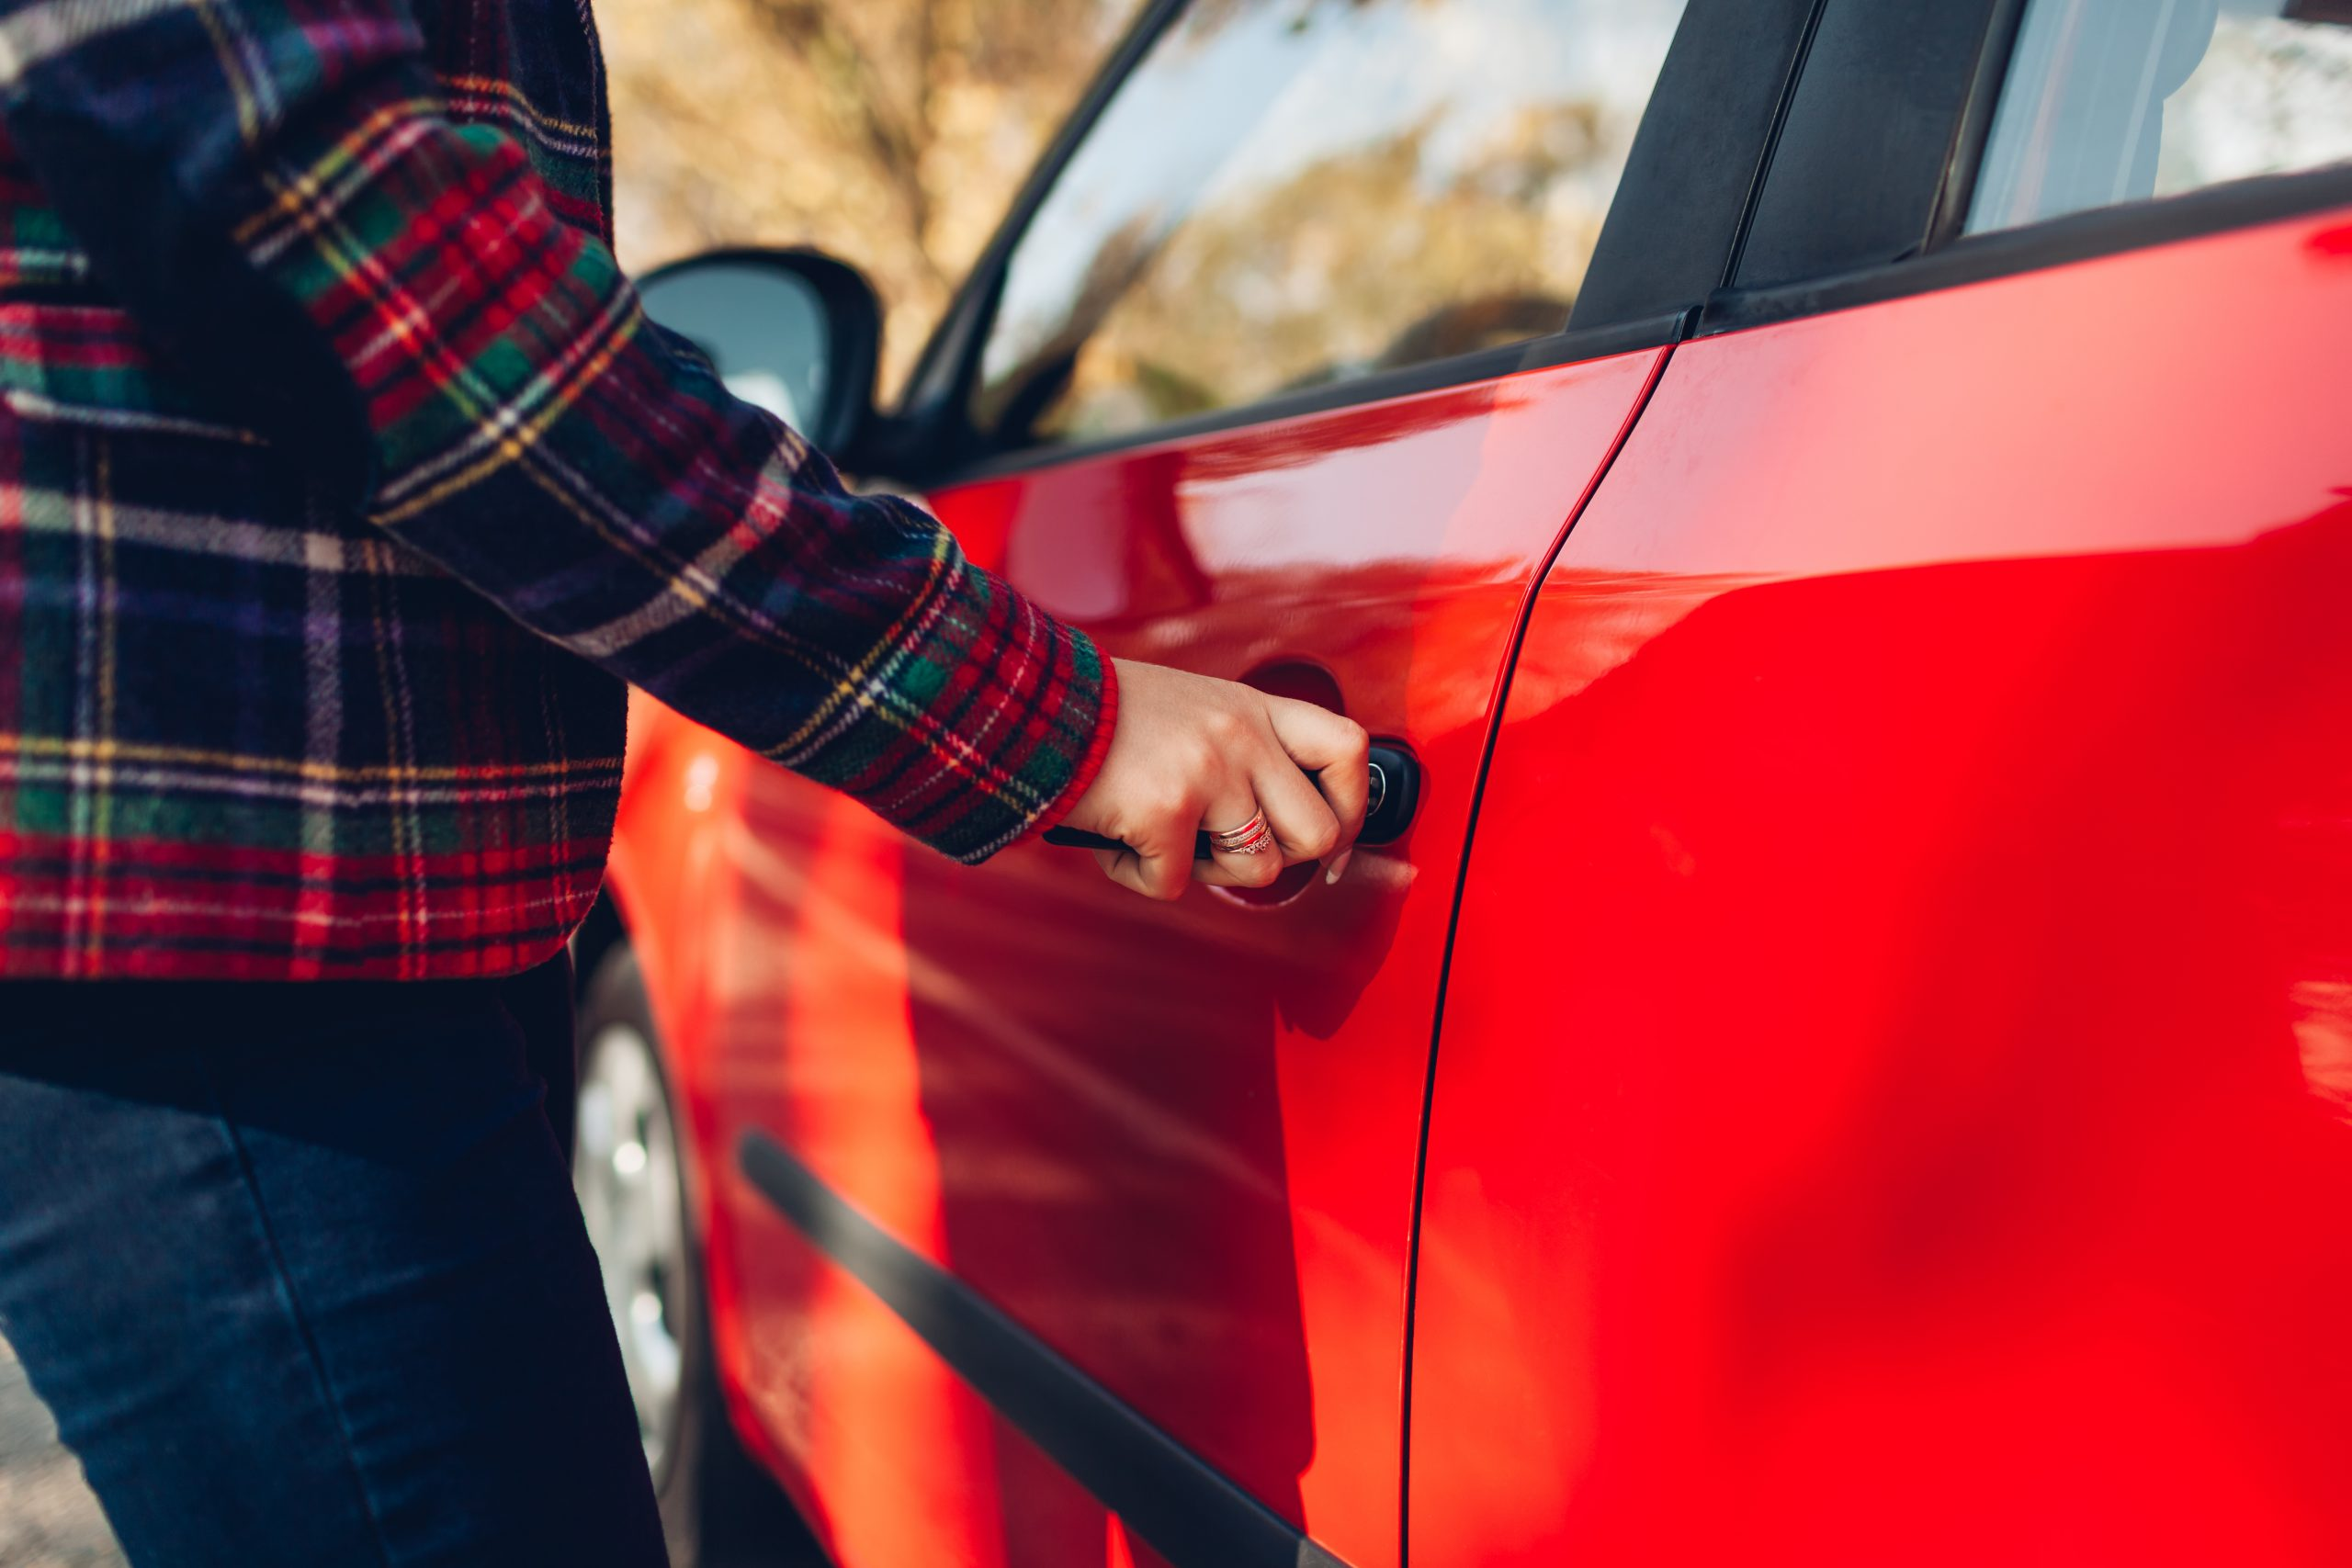 Opening car door. Woman opens red car with key on autumn road. Driver locks door up